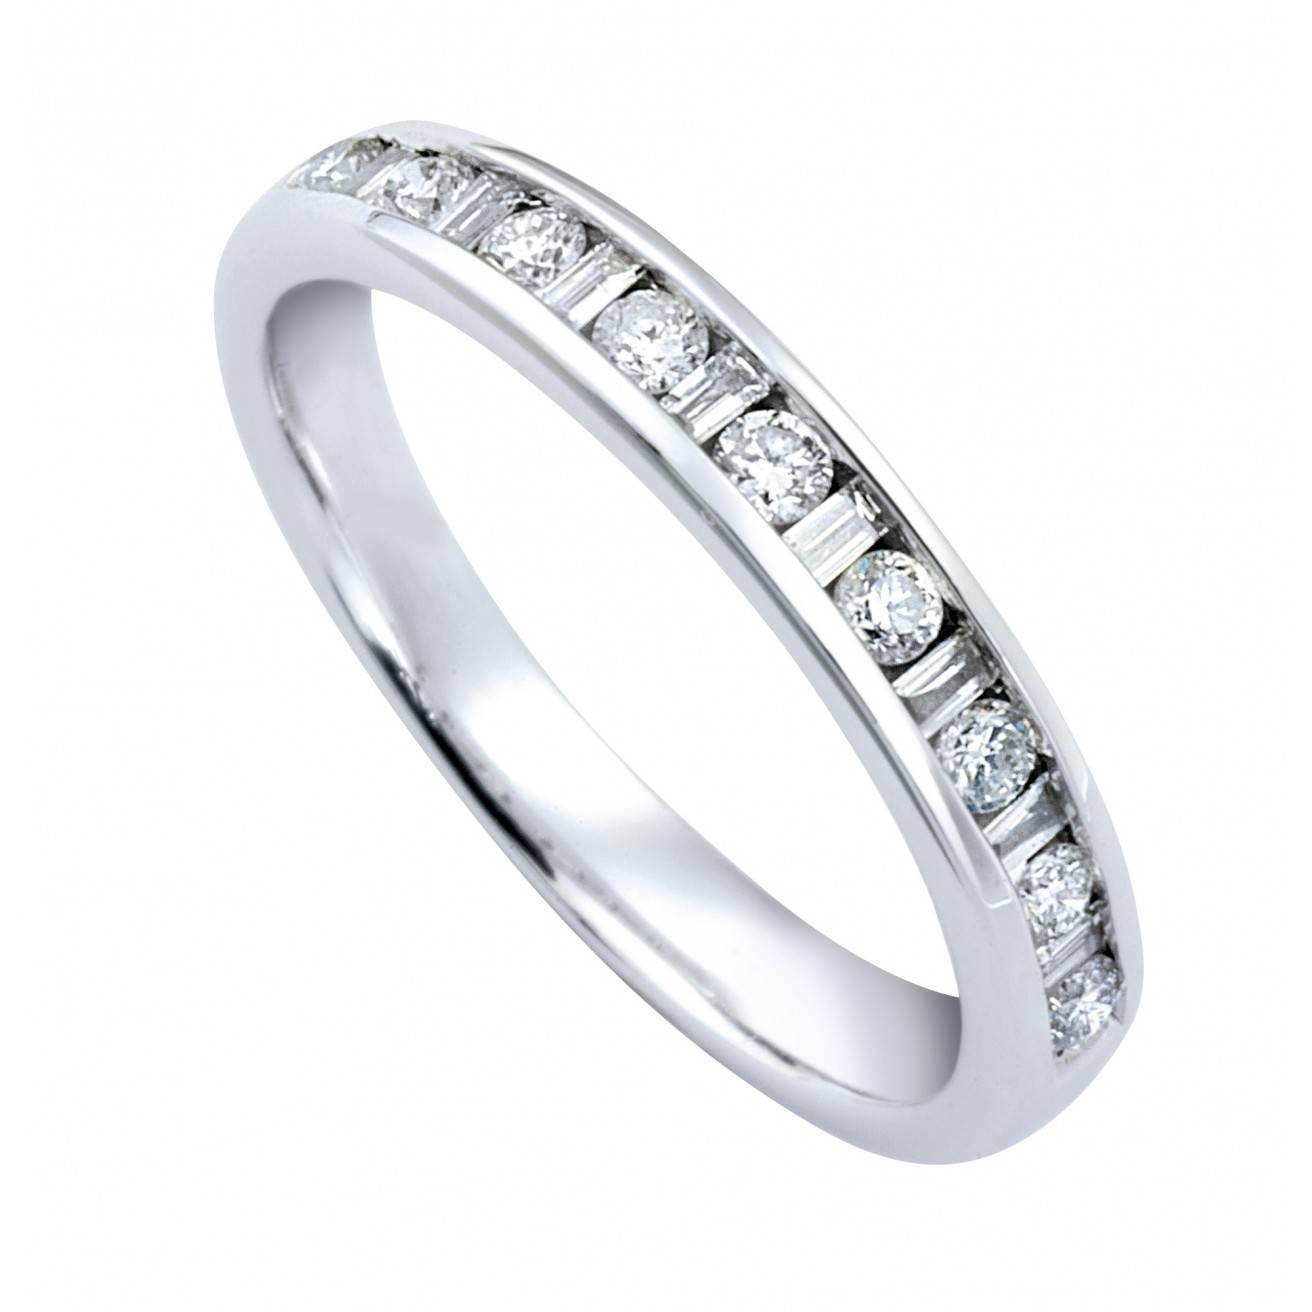 Buy A Diamond Wedding Ring Online – Fraser Hart Pertaining To Baguette Diamond Wedding Rings (View 10 of 15)